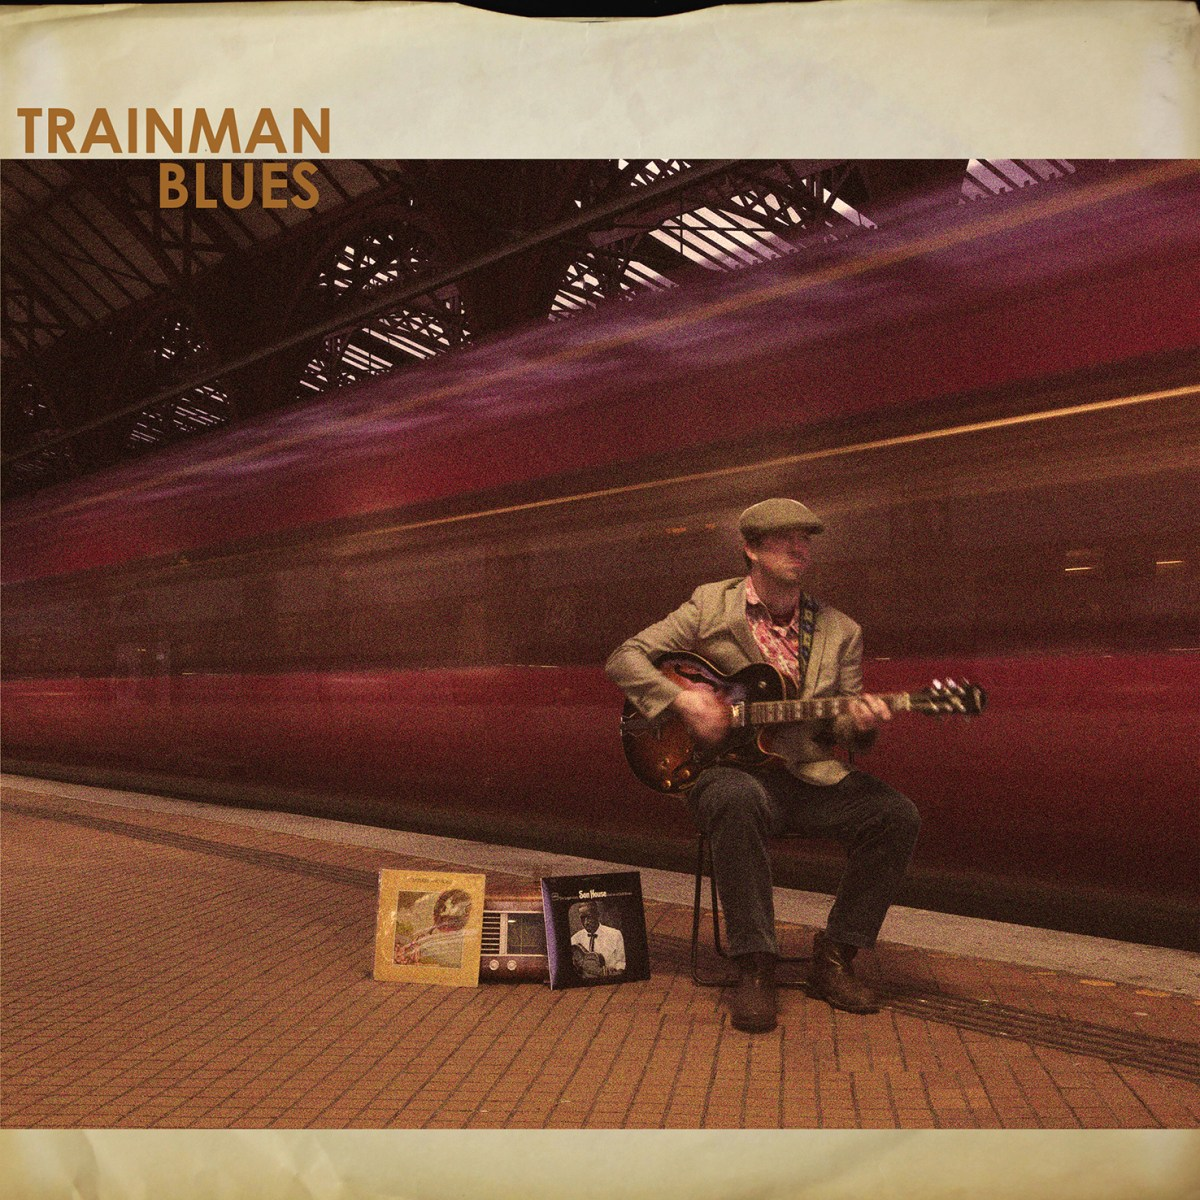 Anmeldelse: Trainman Blues: Trainman Blues (Straight Shooter)